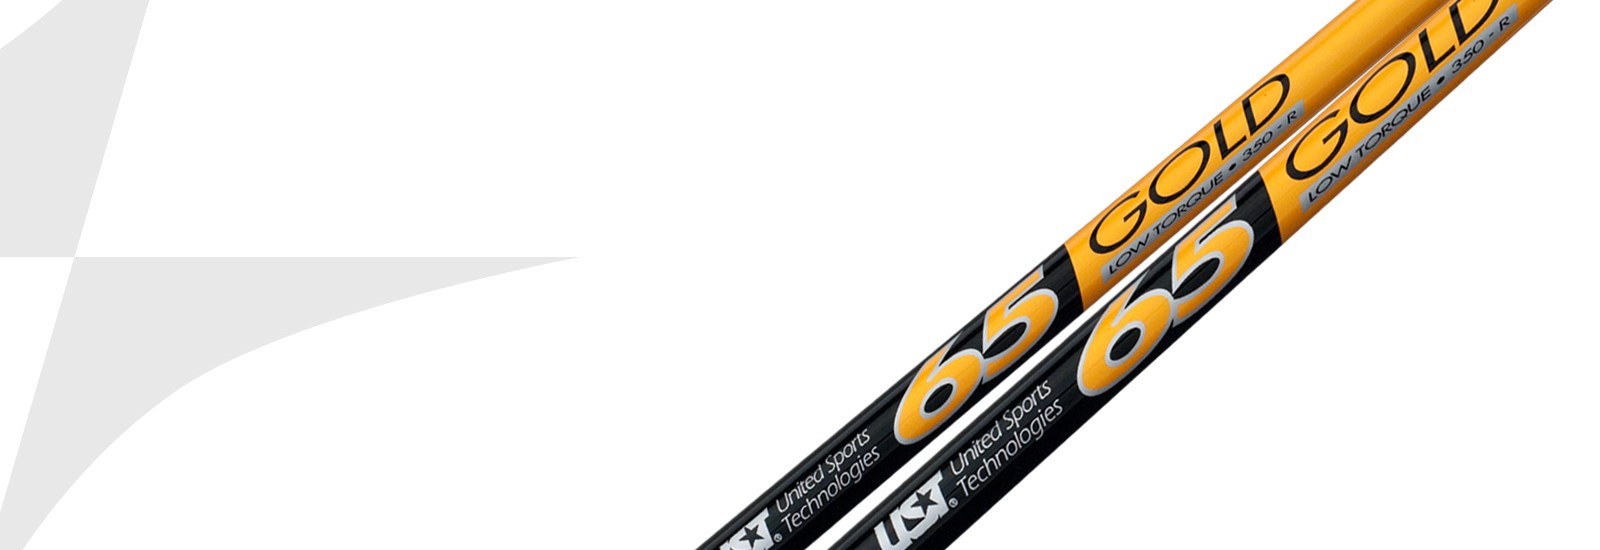 UST Mamiya Gold Wood Shafts